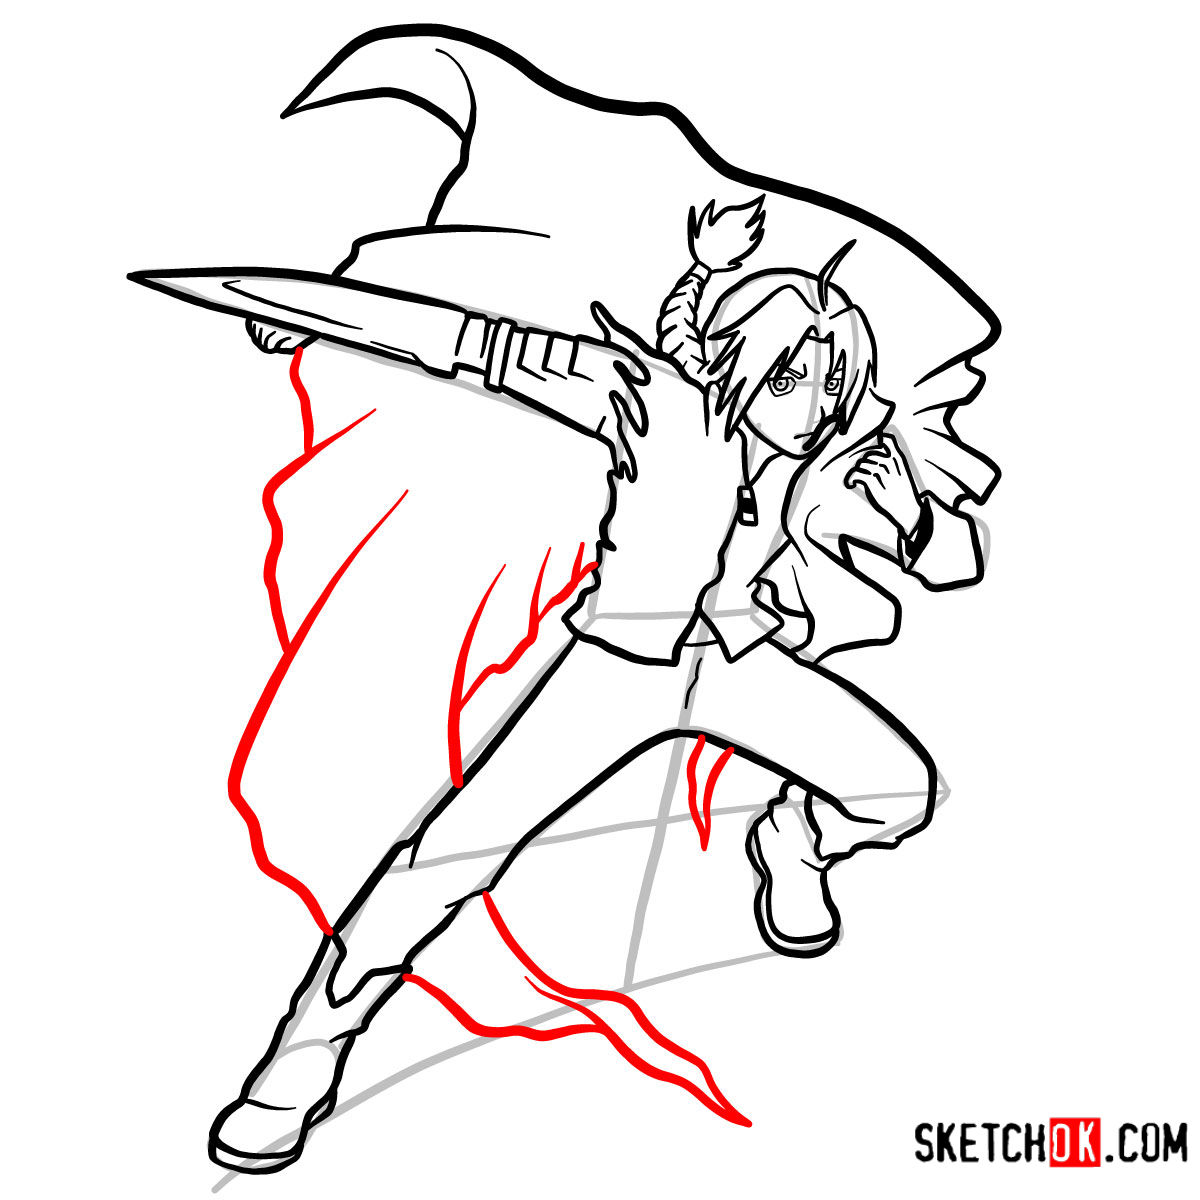 How to draw Edward Elric in a fight | Fullmetal Alchemist - step 14